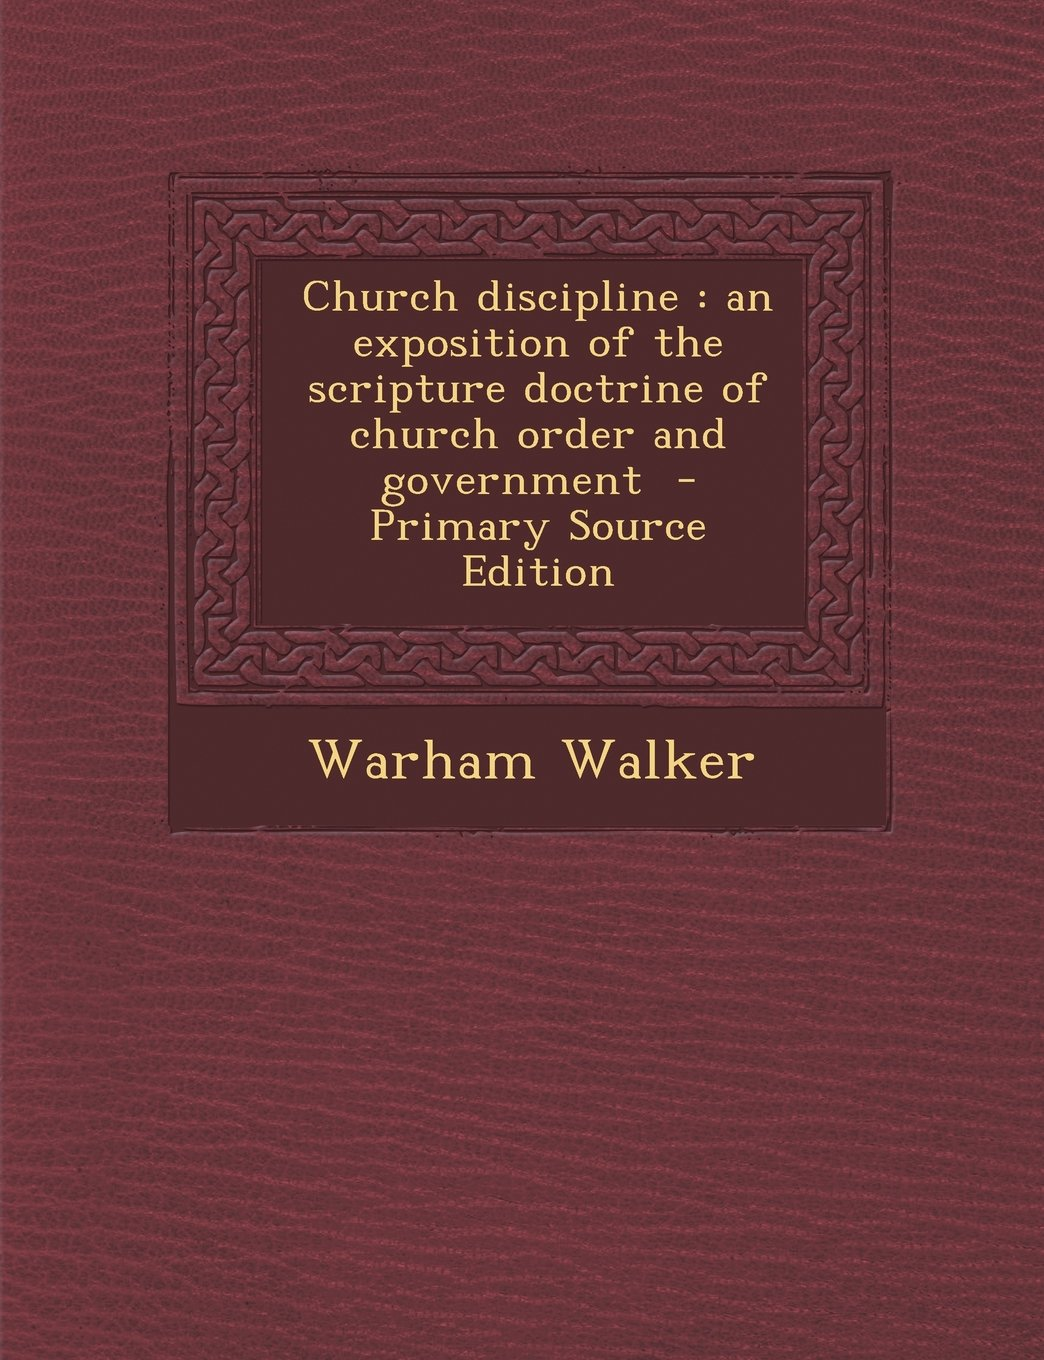 Church Discipline: An Exposition of the Scripture Doctrine of Church Order and Government - Primary Source Edition pdf